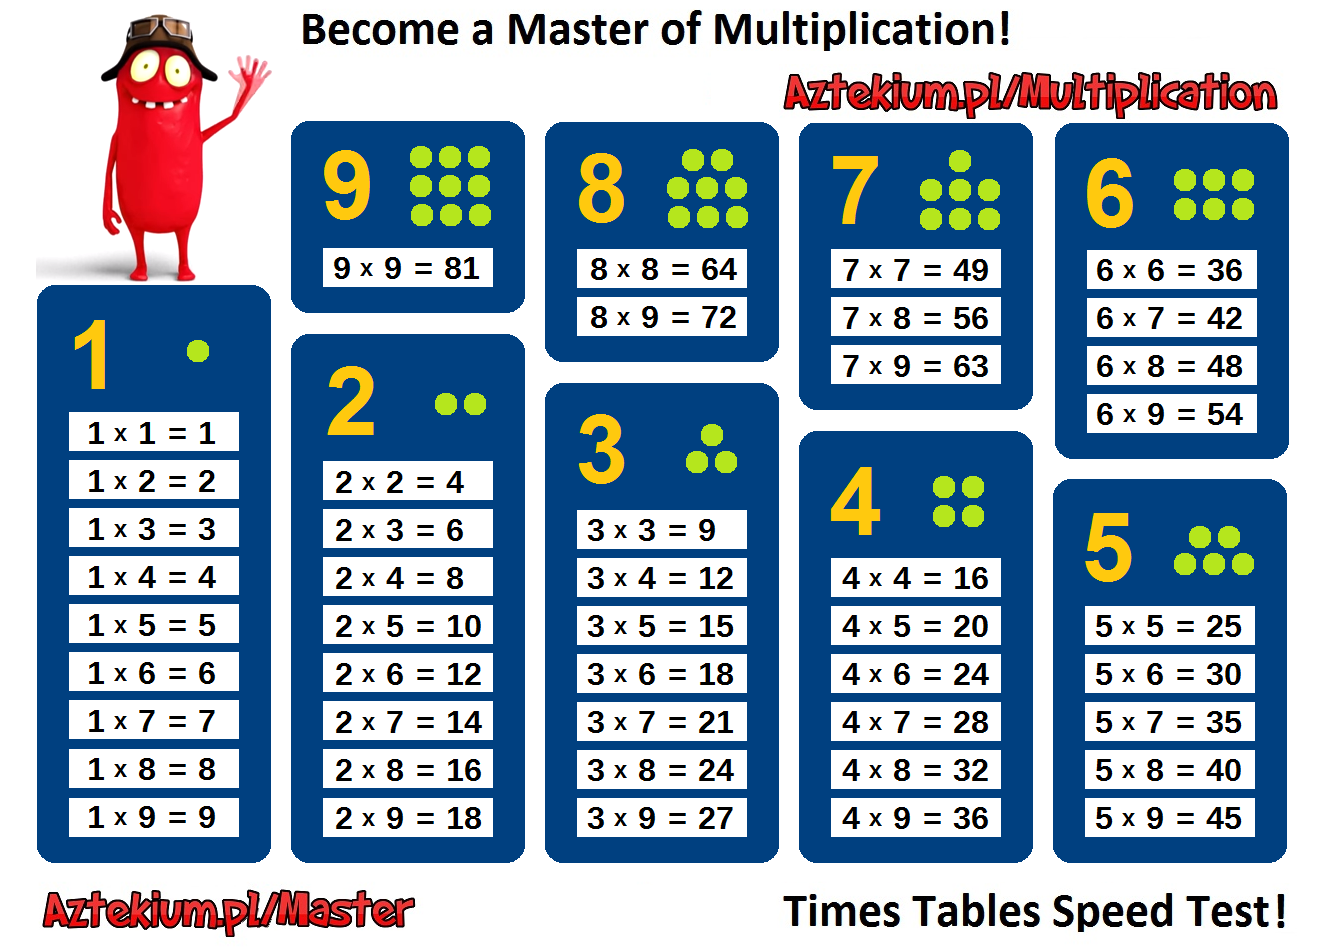 Learn Multiplication Tables Online